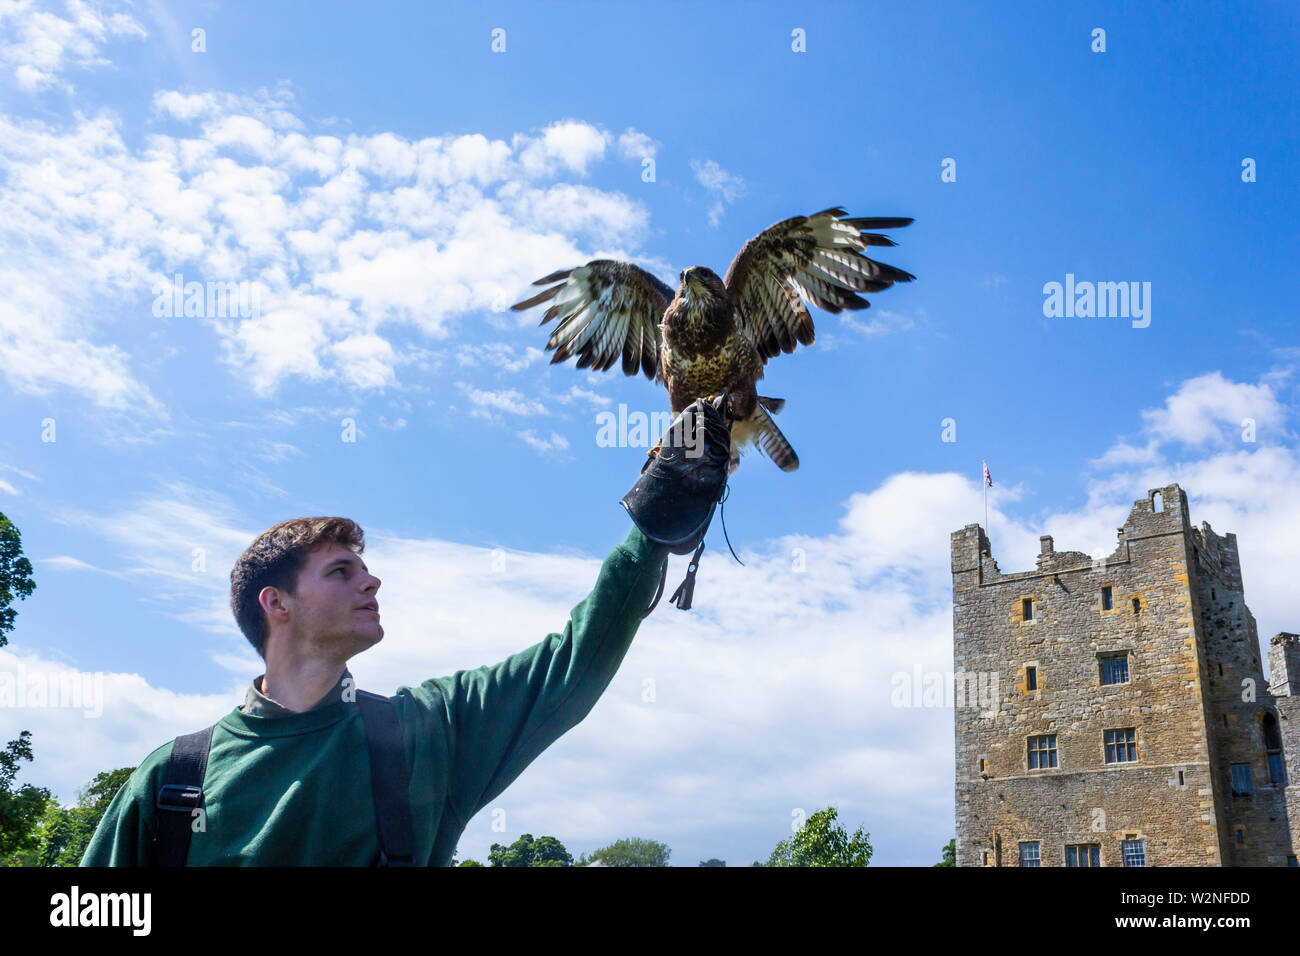 Bolton Castle, Wensleydale, Yorkshire, England. Falconry display.  Mary, Queen of Scots was held prisoner at Bolton for six months in 1568. - Stock Image